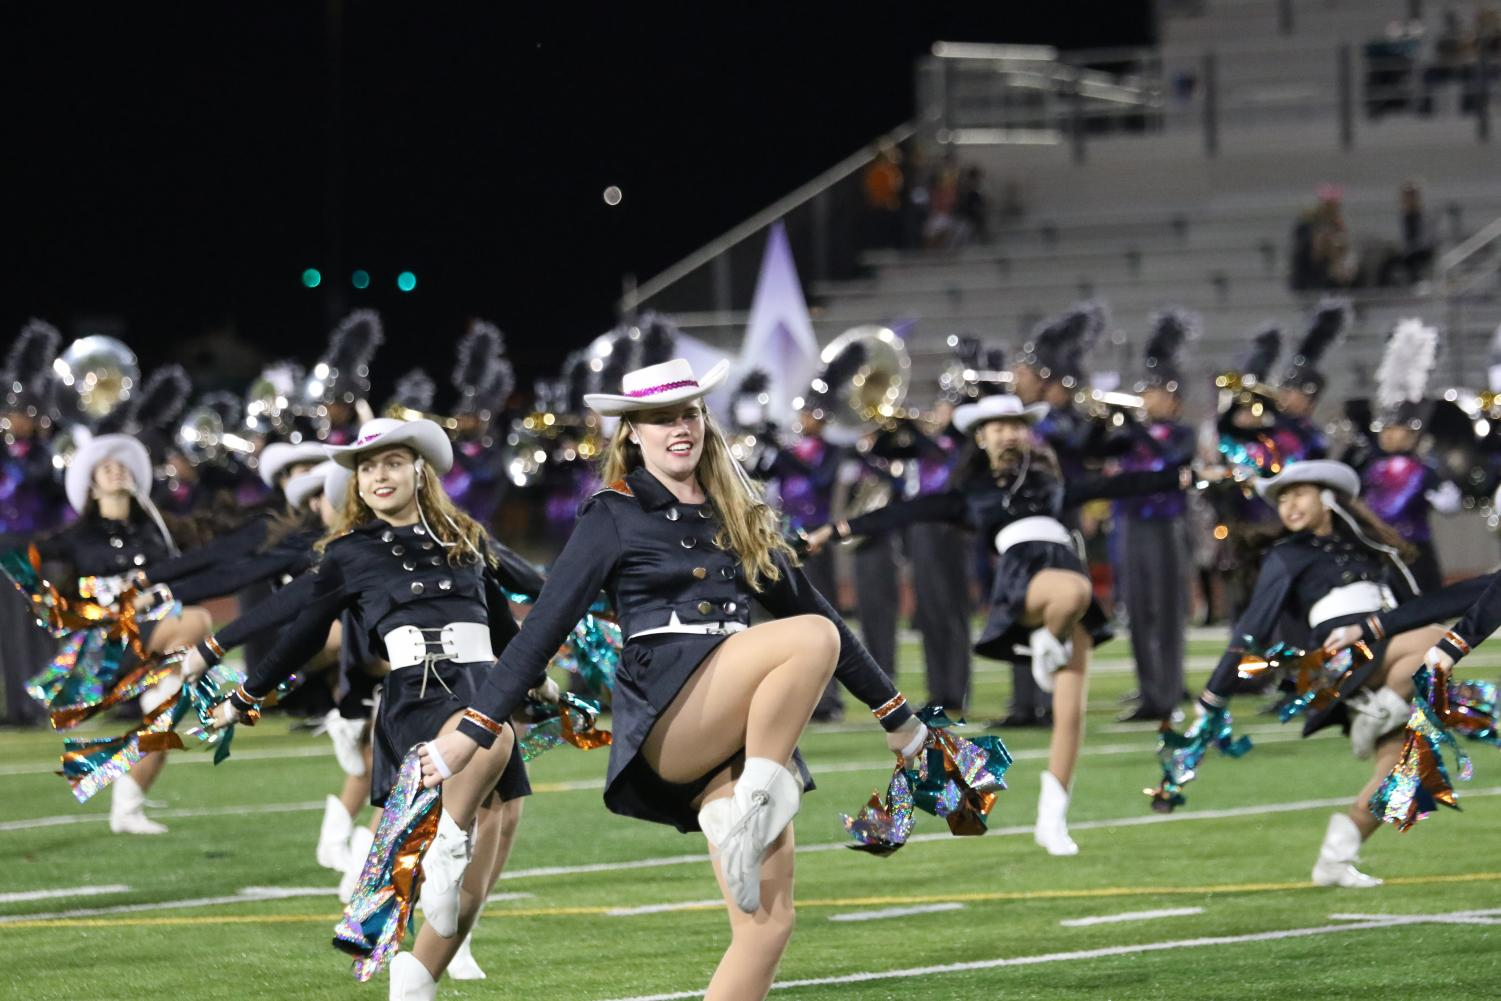 SunDancers+get+ready+to+kick+while+they+perform+their+halftime+routine.